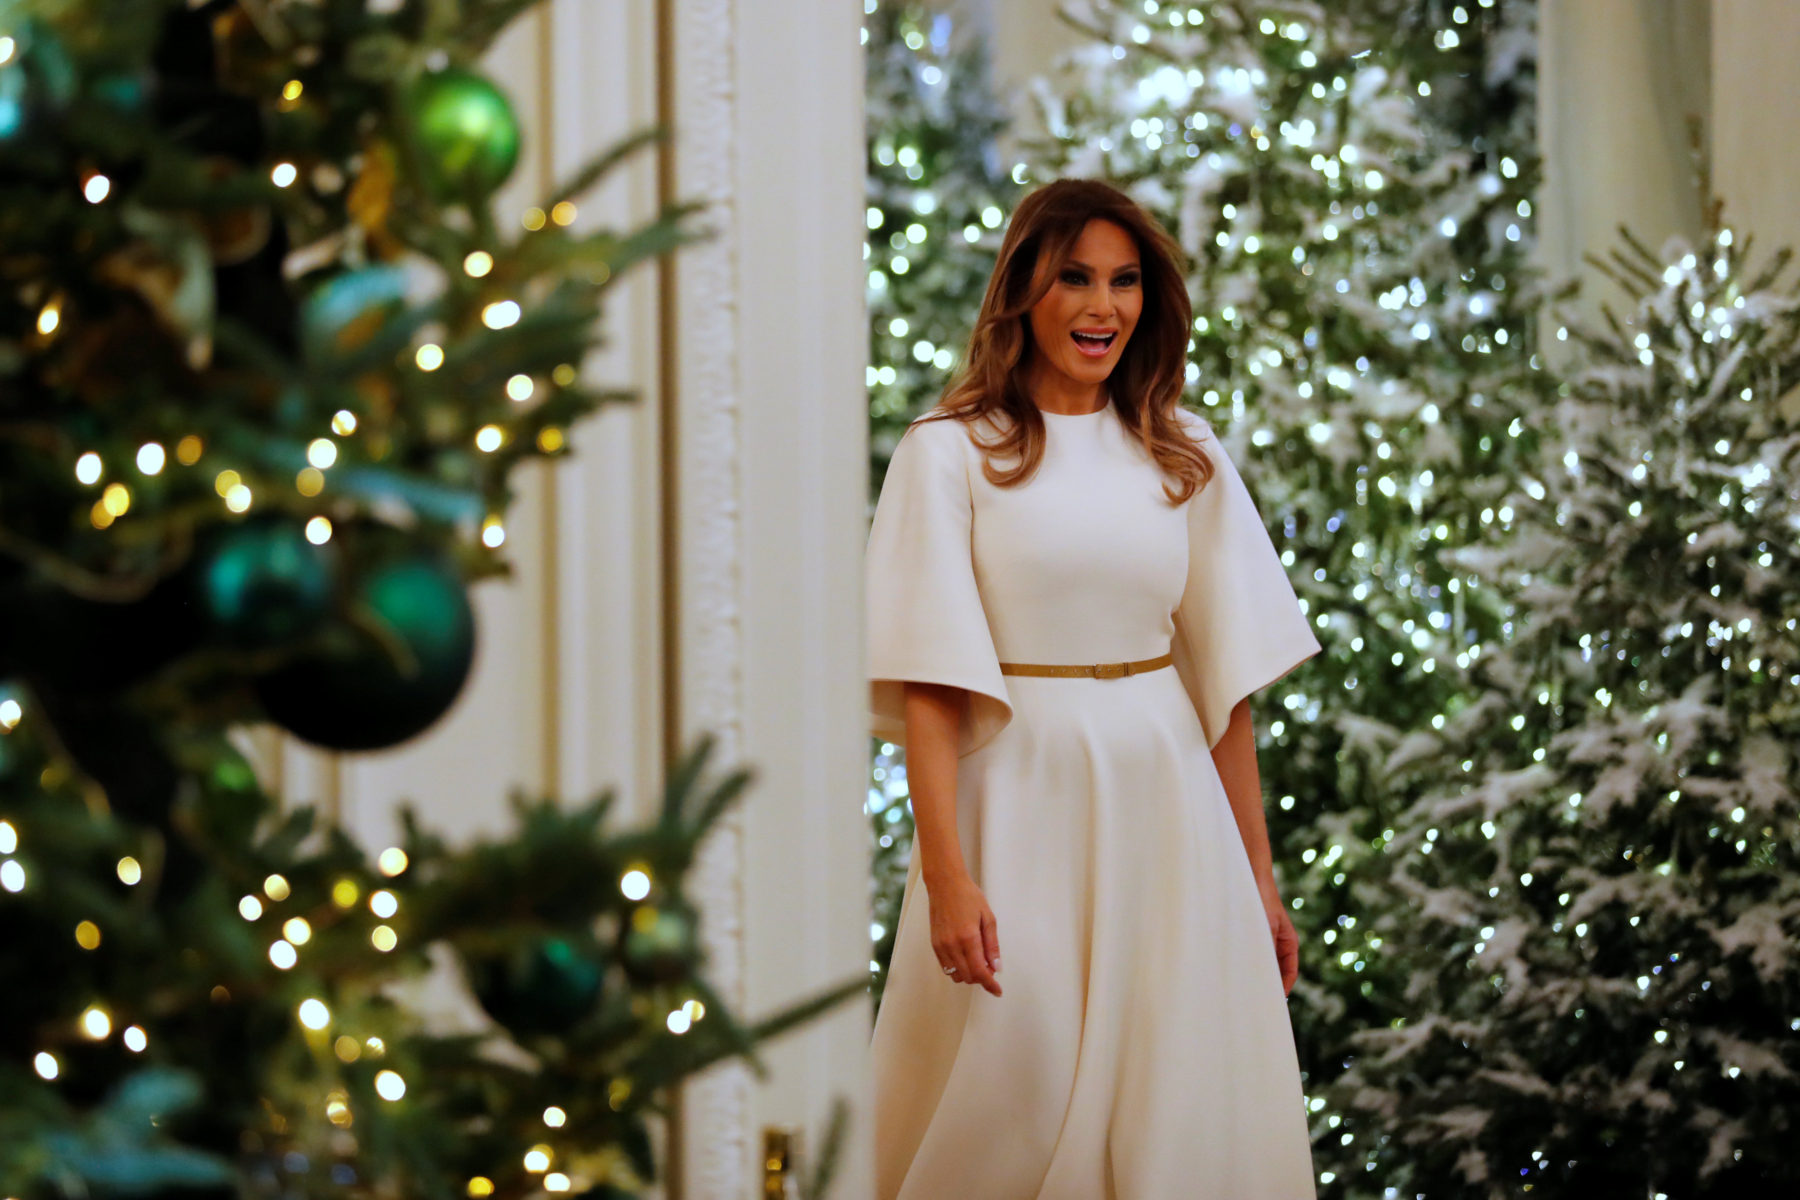 Kim Eggert from Park Ridge Shares Her Experience Decorating the White House for Christmas